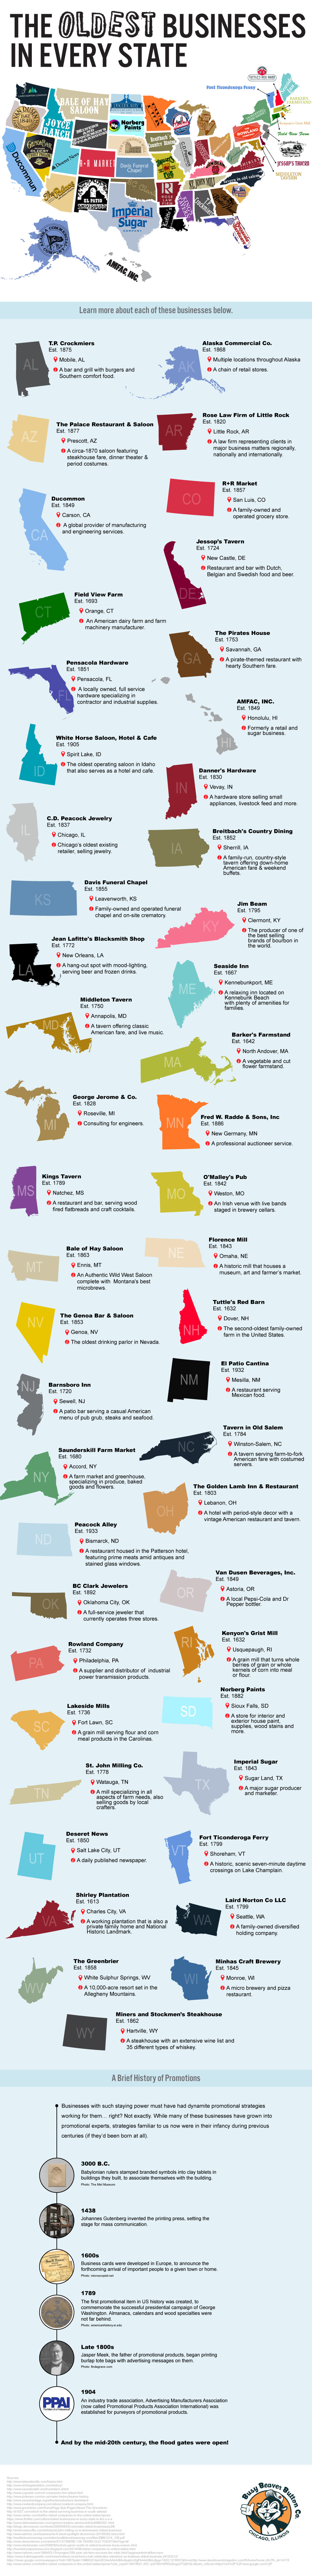 What's the Oldest Business in Your State? (Infographic)